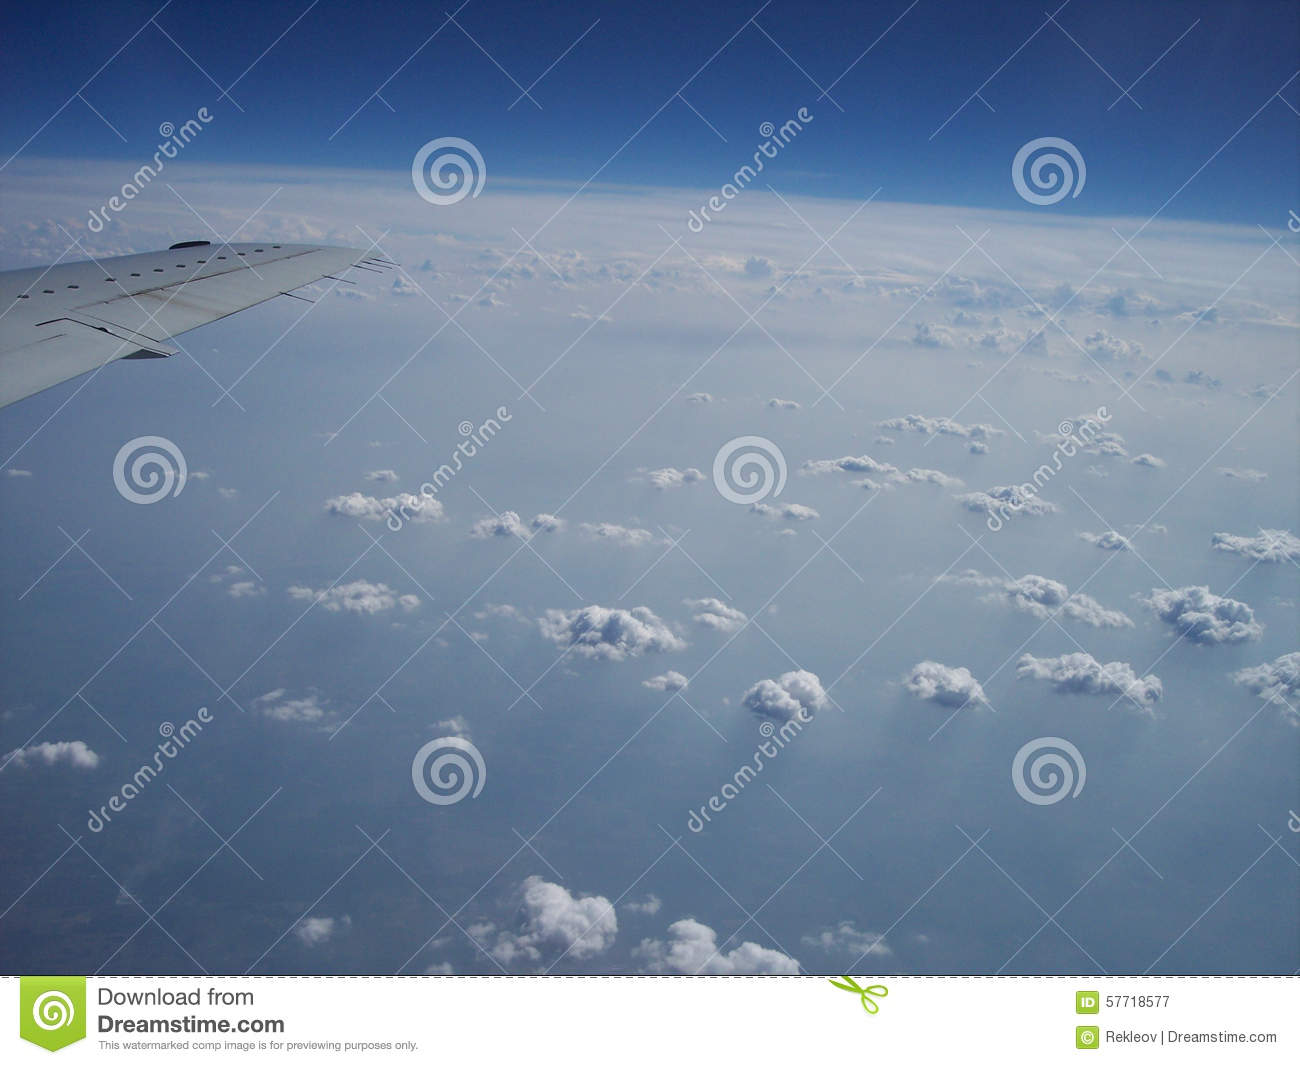 Not Quite The Curvature Of The Earth Stock Image - Image of white